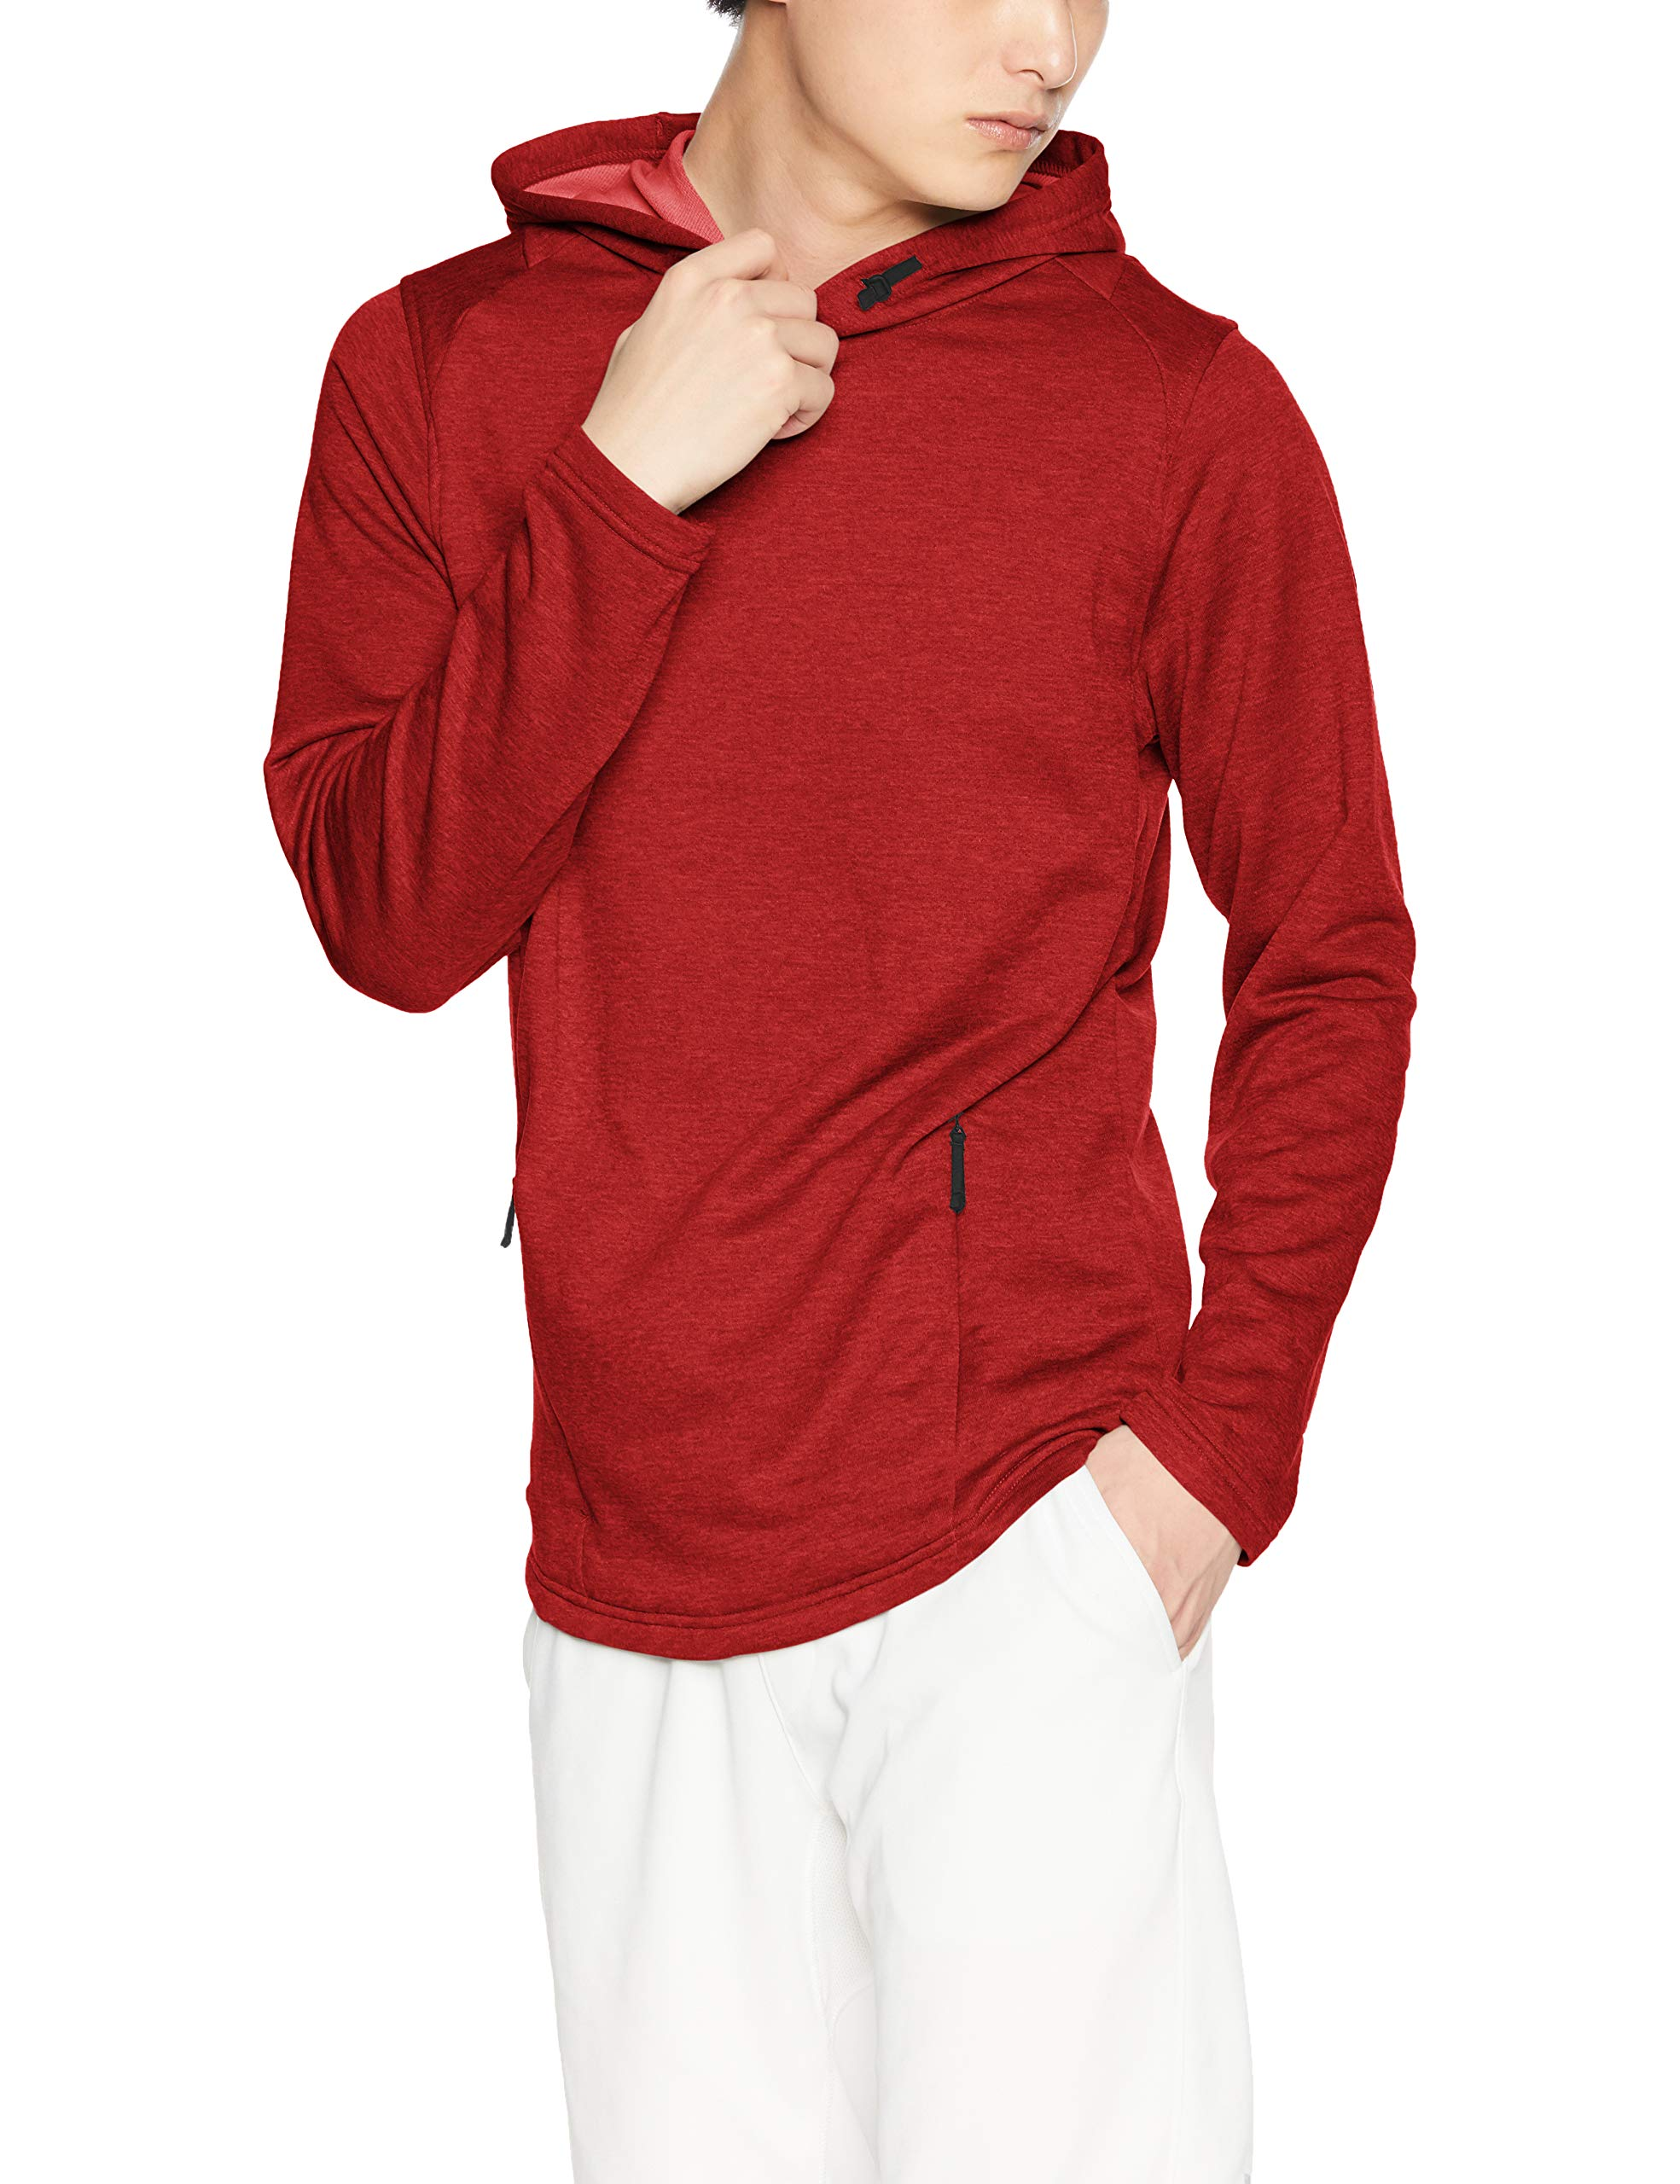 Under Armour Men's MK-1 Terry Hoodie, Pierce (629)/Graphite, Large by Under Armour